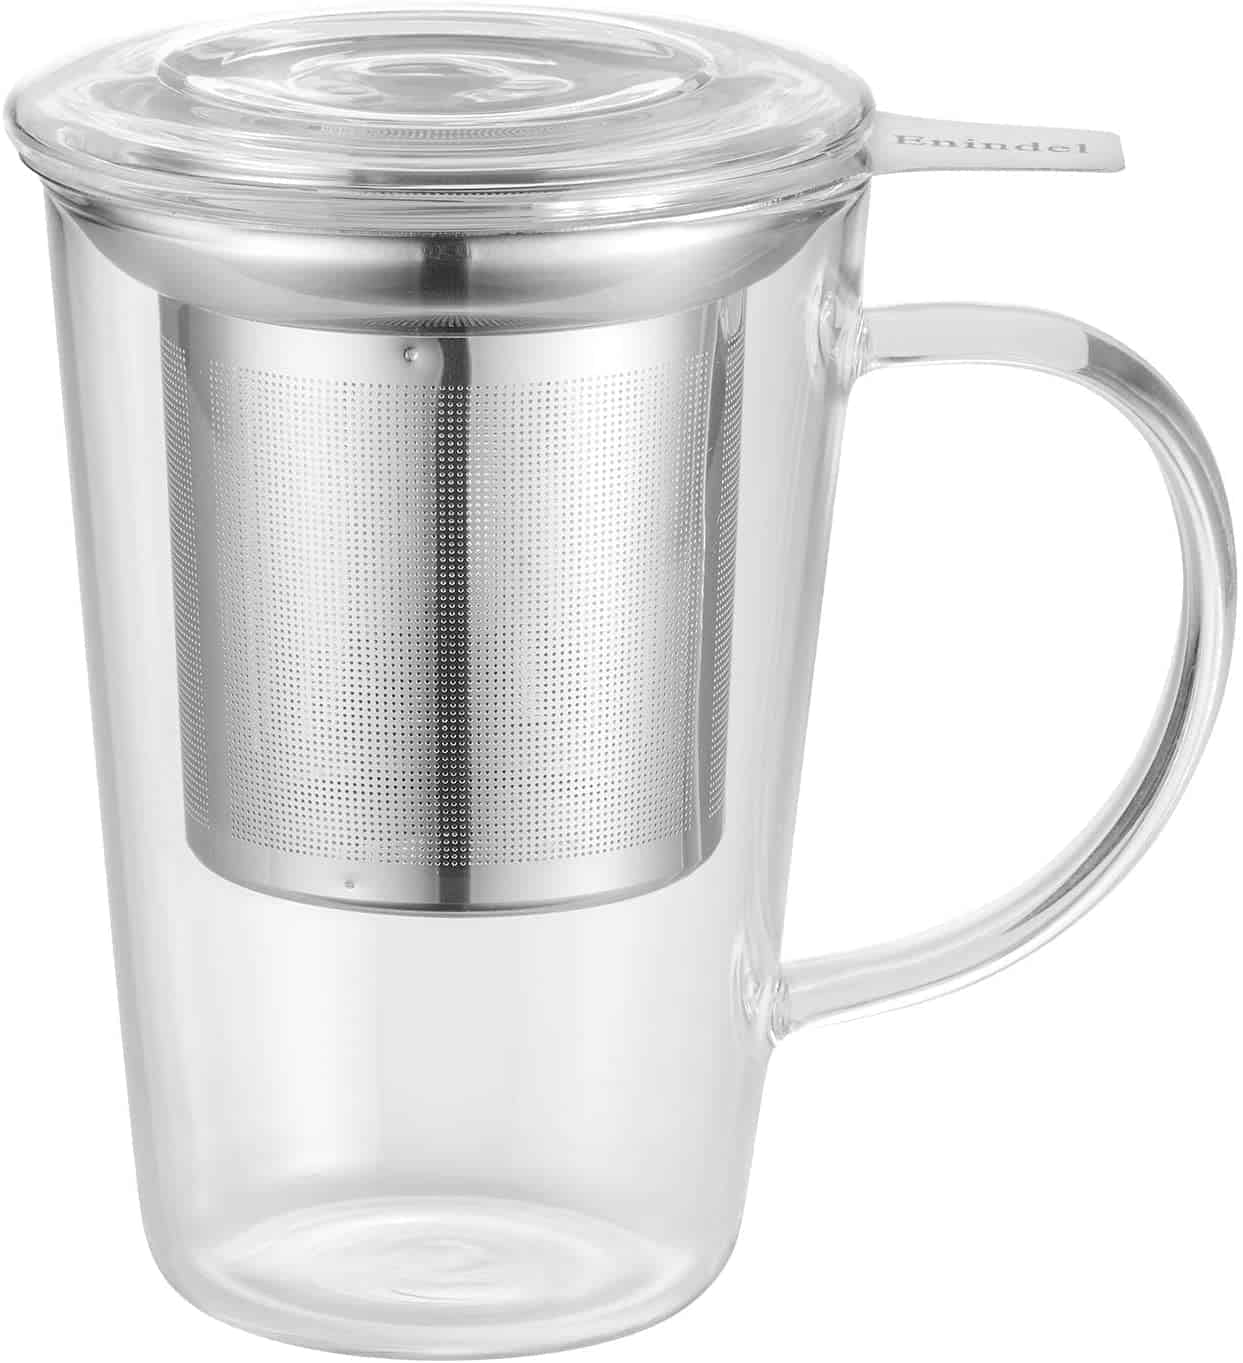 Enindel Glass Tea Cup With Infuser And Lid